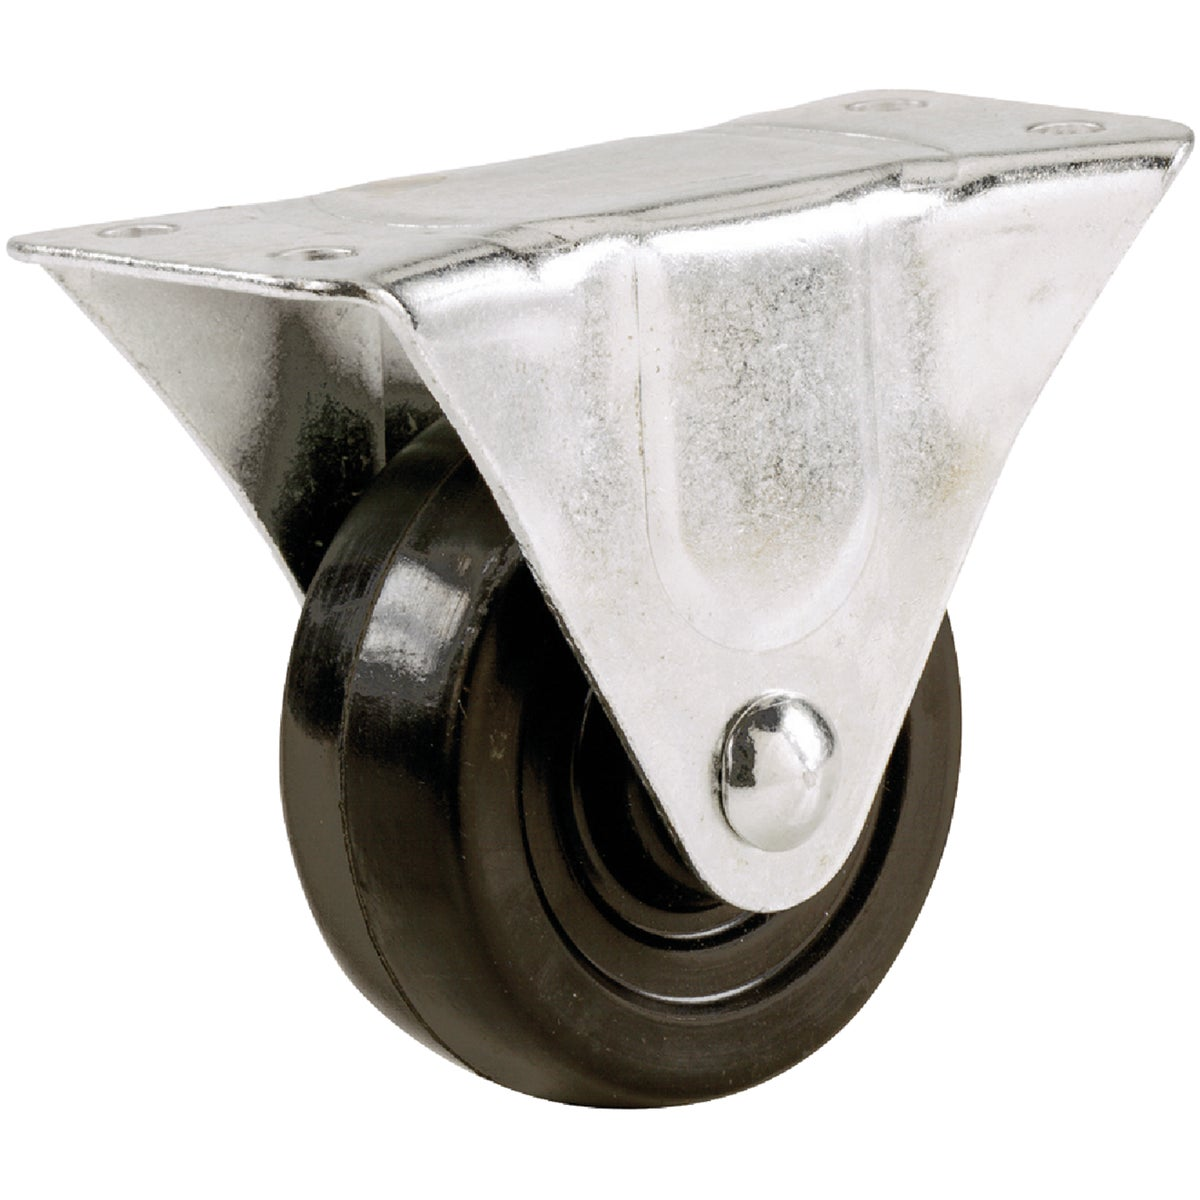 "2"" RUBBER RIGID CASTER - 9481 by Shepherd Hardware"